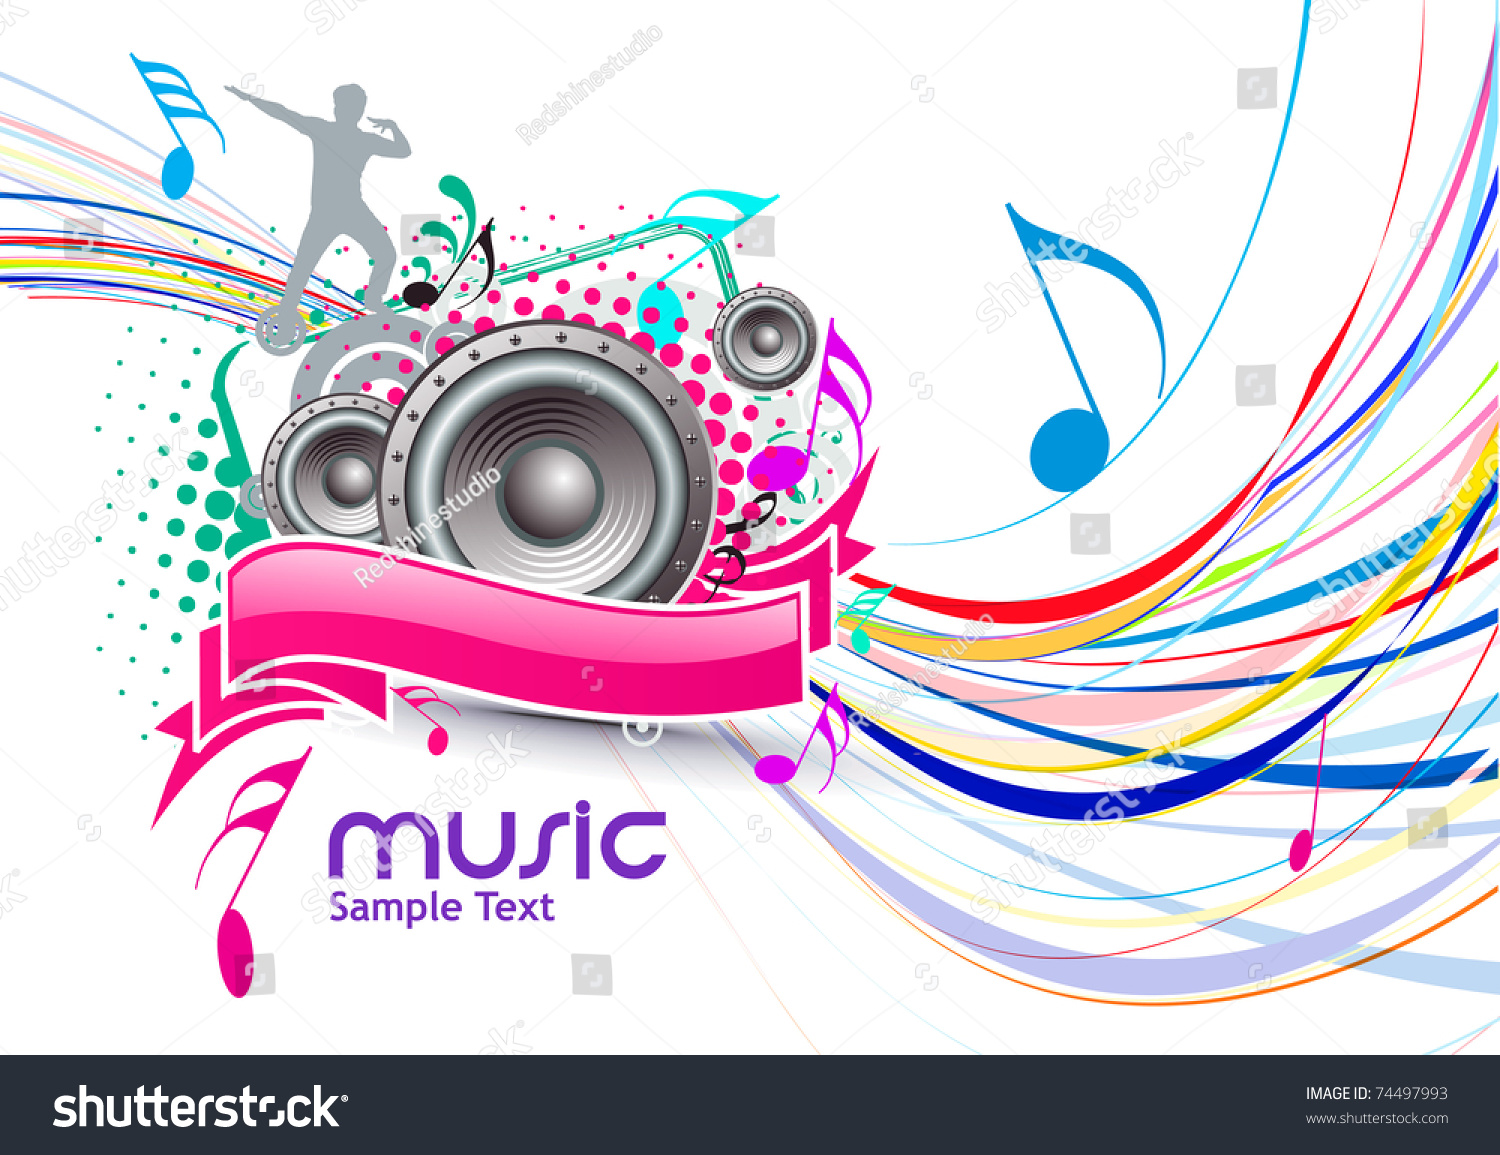 Full Color Music Background: Abstract Colorful Music Event Background With Color Full